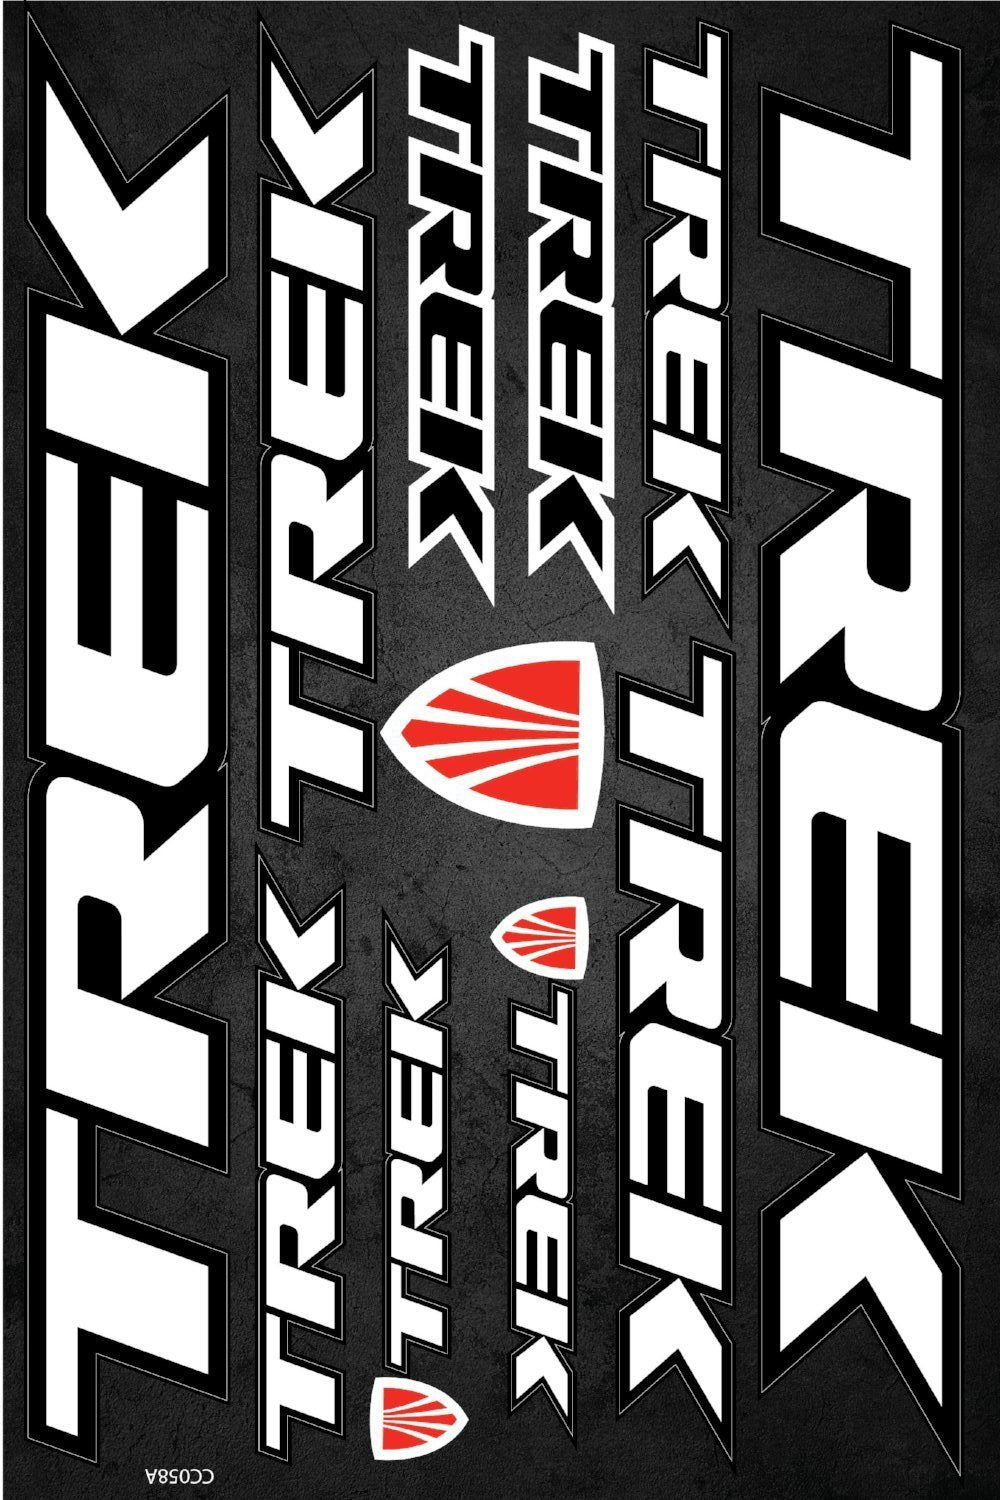 Trek self-adhesive sticker for a bike - model 1